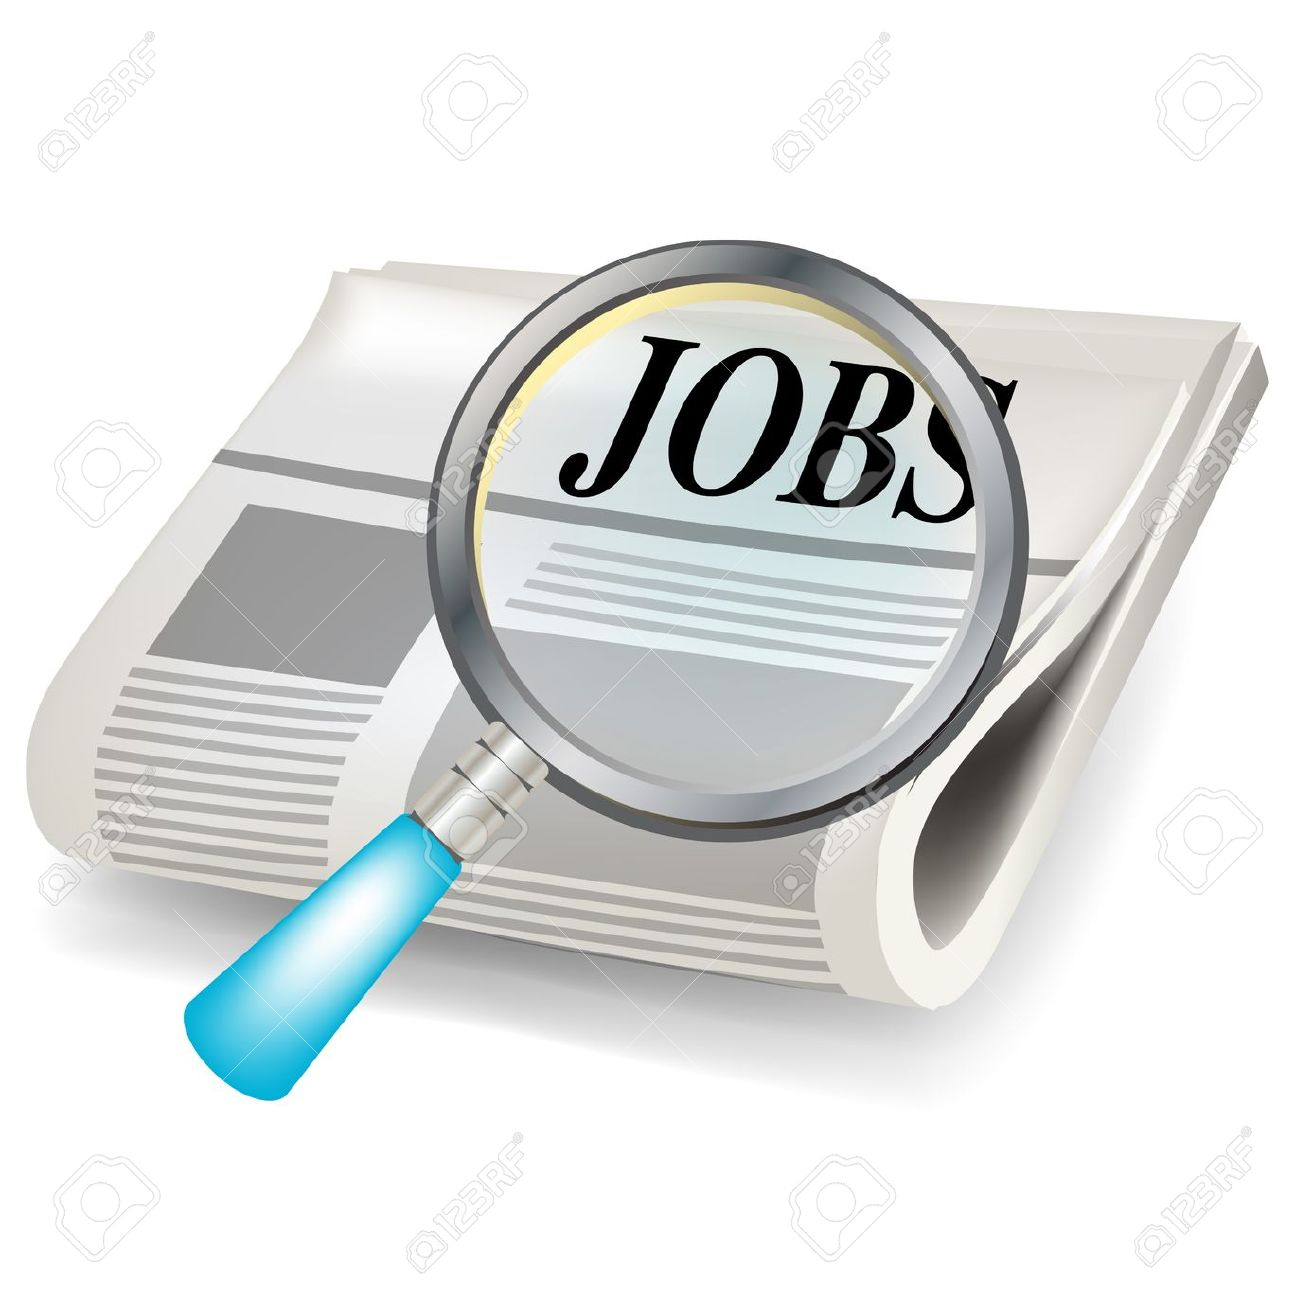 Clipart for job search. Searching clipartfest and magnifier